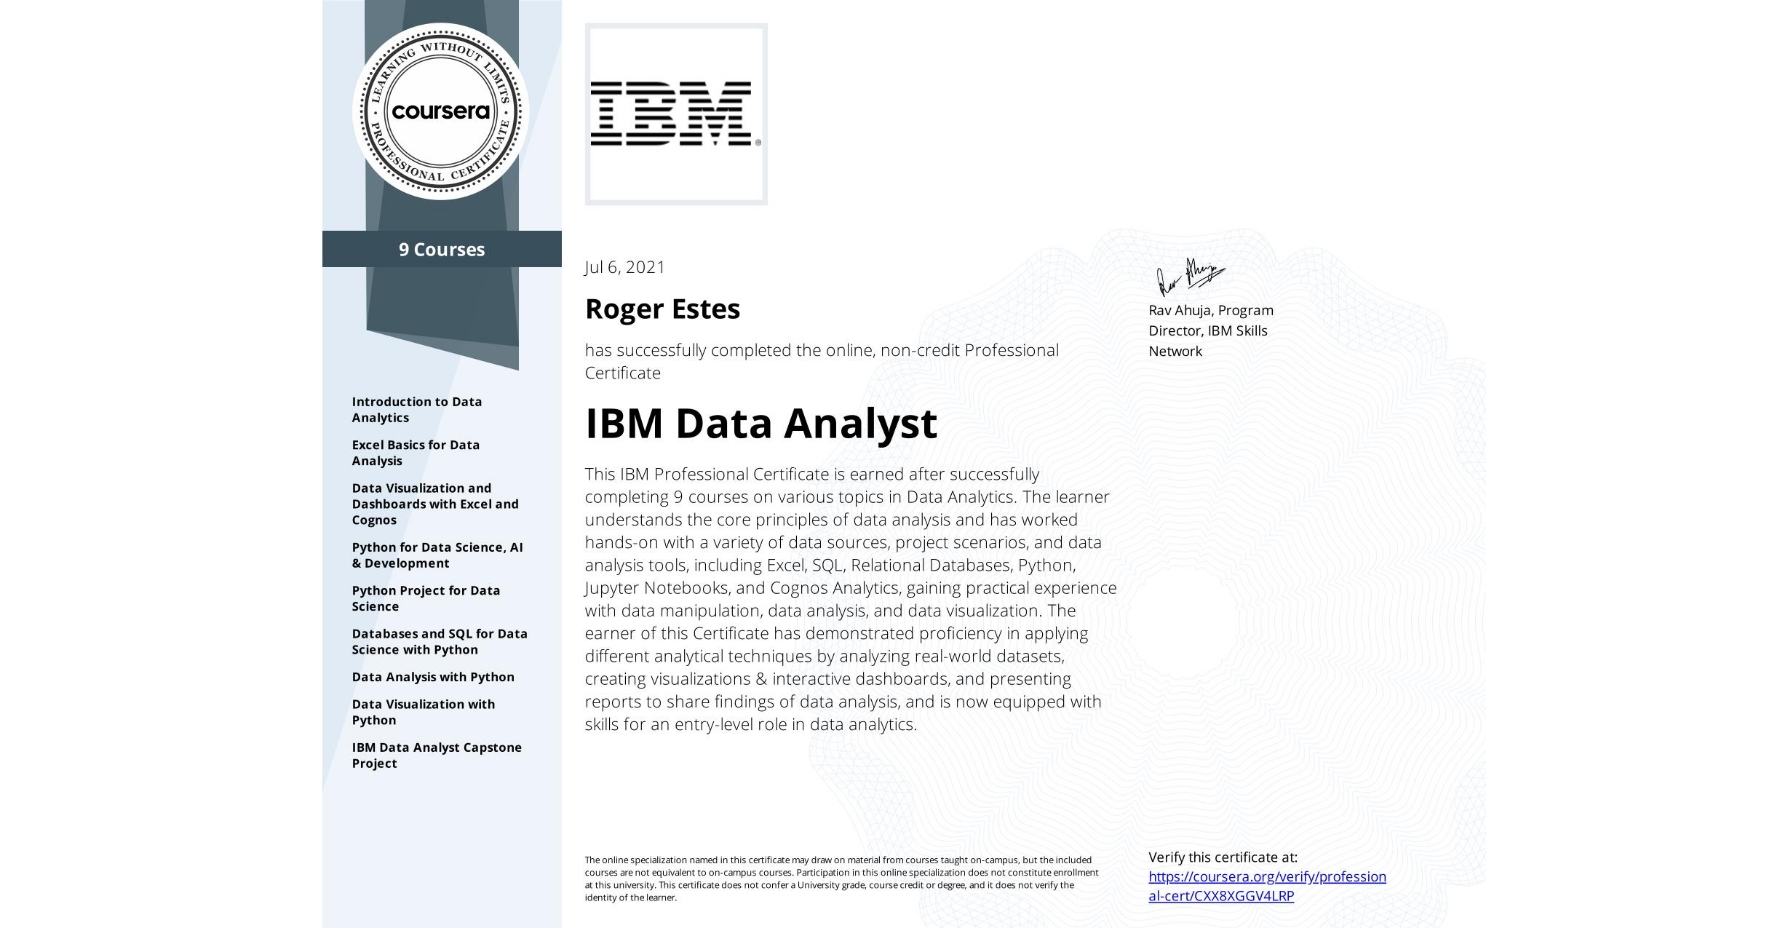 View certificate for Roger Estes, IBM Data Analyst, offered through Coursera. This IBM Professional Certificate is earned after successfully completing 9 courses on various topics in Data Analytics.  The learner understands the core principles of data analysis and has worked hands-on with a variety of data sources, project scenarios, and data analysis tools, including Excel, SQL, Relational Databases, Python, Jupyter Notebooks, and Cognos Analytics, gaining practical experience with data manipulation, data analysis, and data visualization.   The earner of this Certificate has demonstrated proficiency in applying different analytical techniques by analyzing real-world datasets, creating visualizations & interactive dashboards, and presenting reports to share findings of data analysis, and is now equipped with skills for an entry-level role in data analytics.